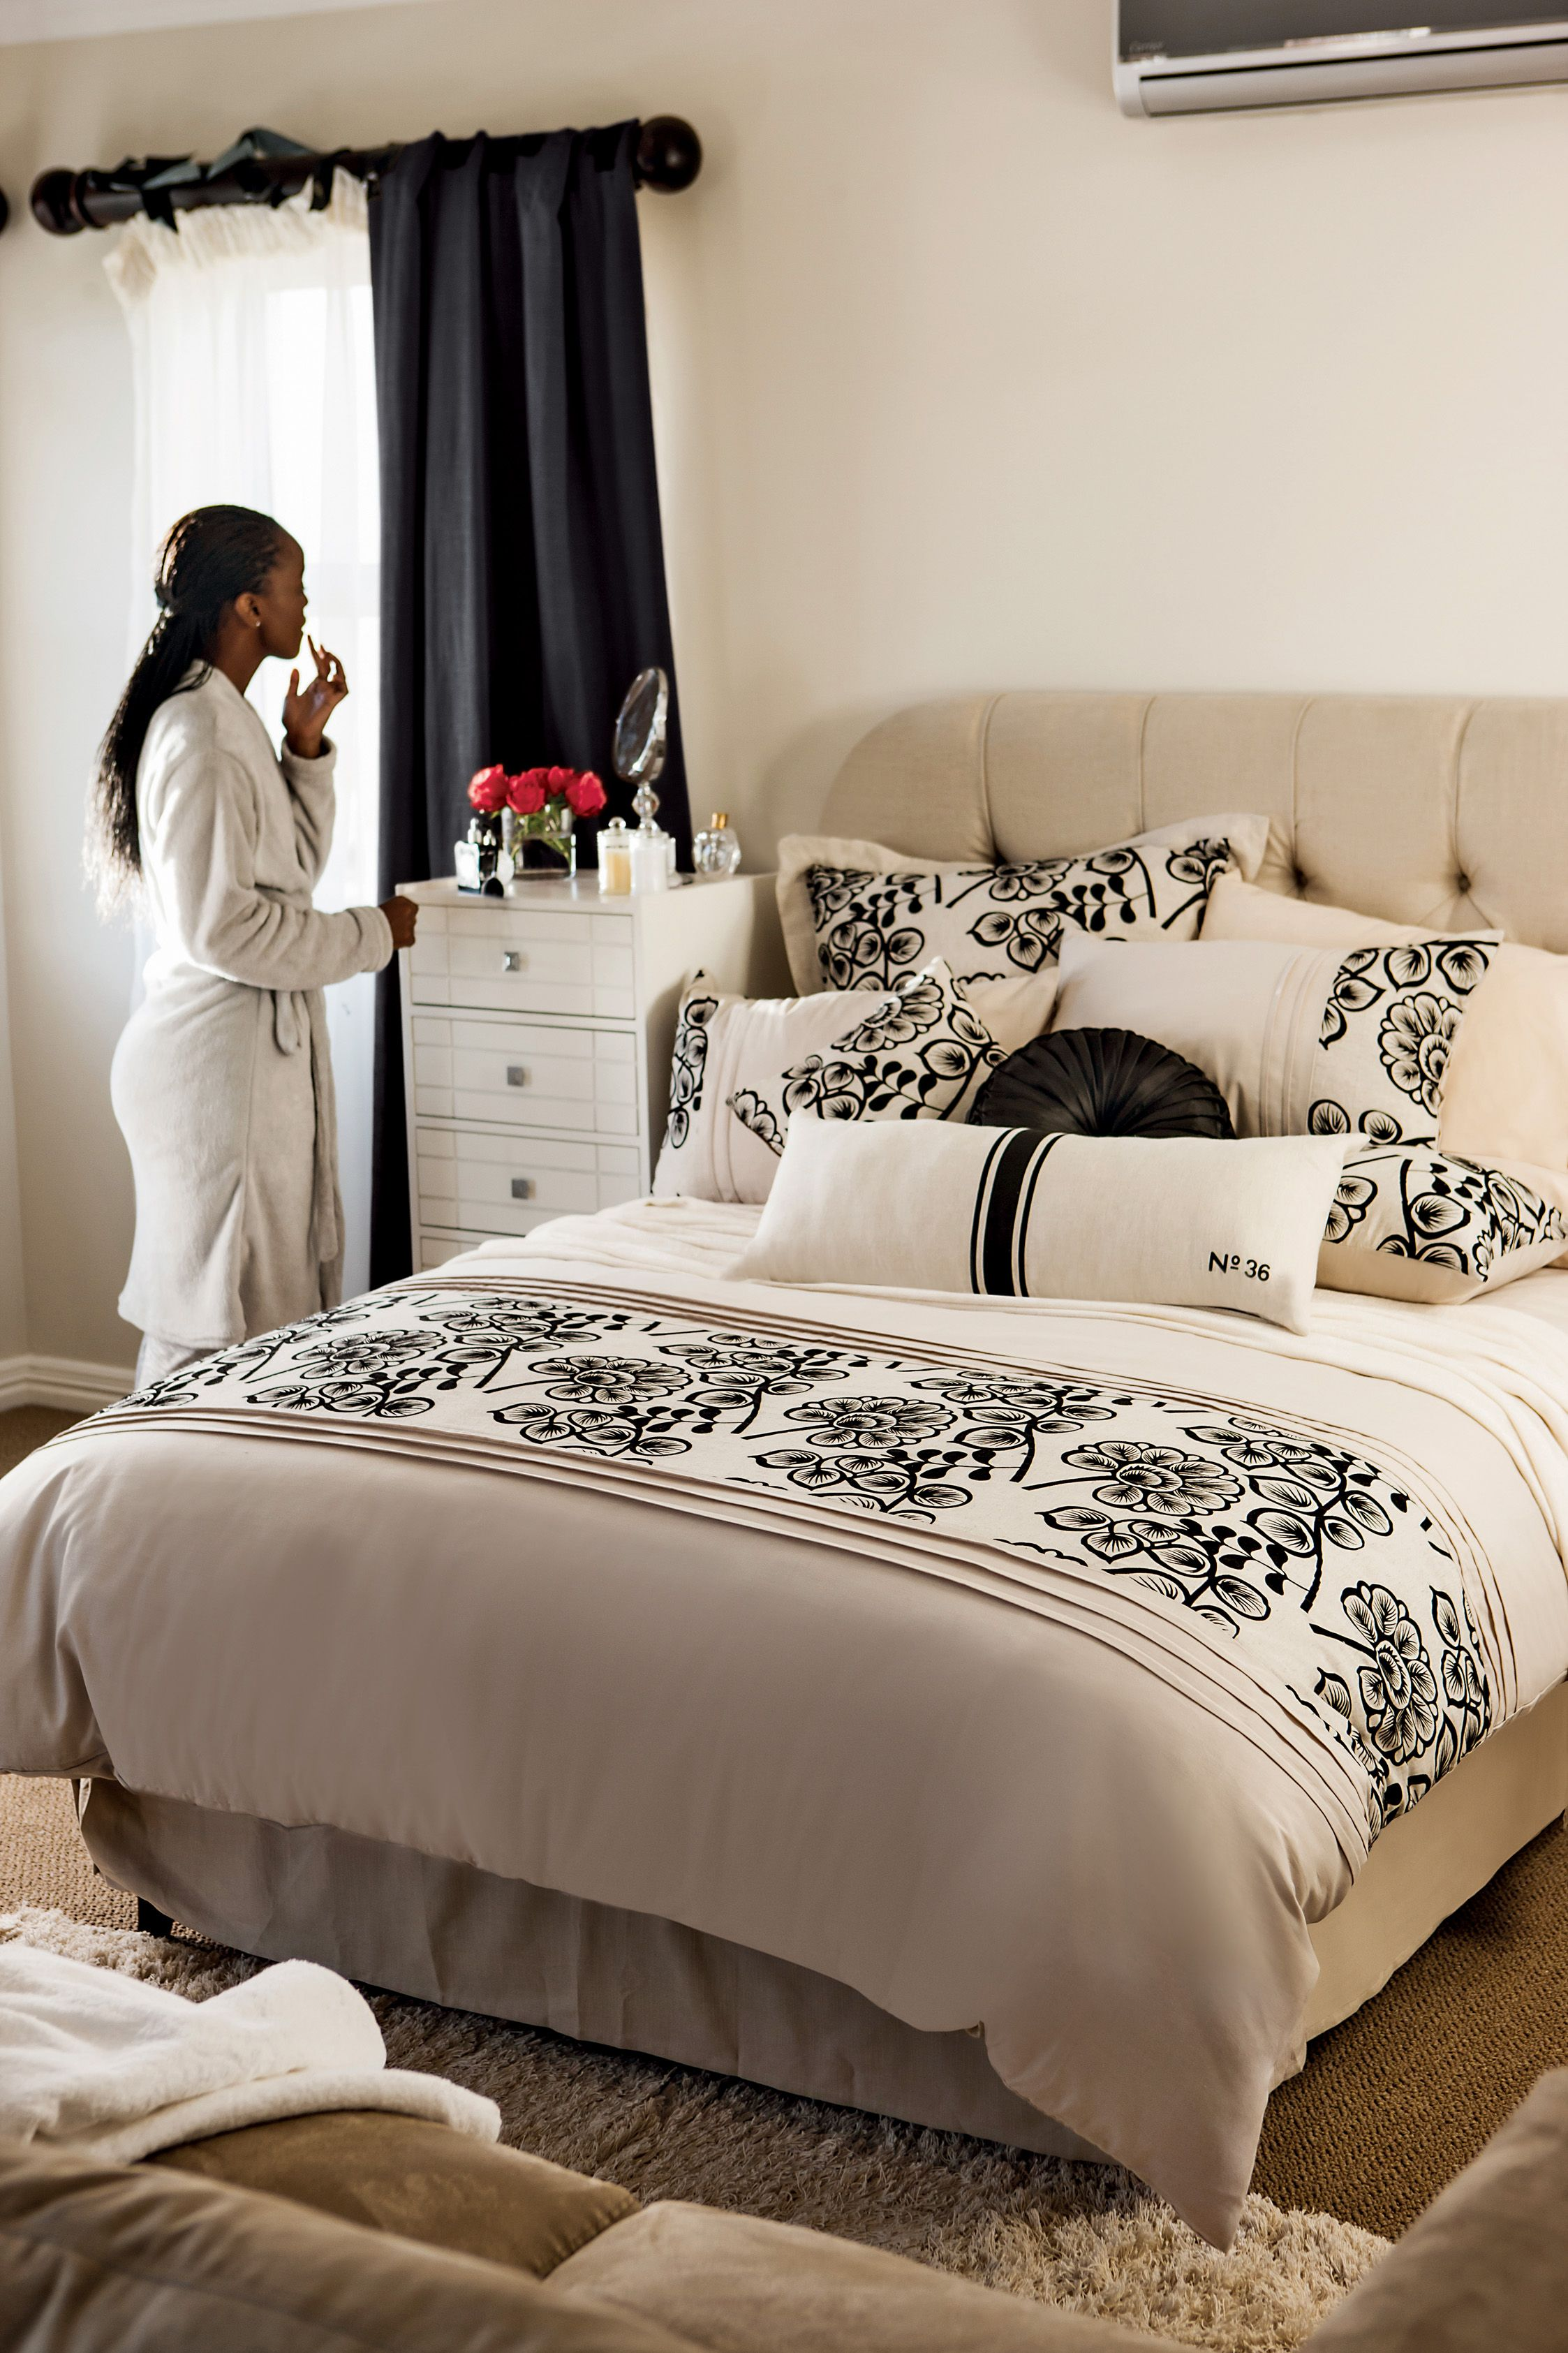 Mr price home bedroom view our range at for Home decor sales online